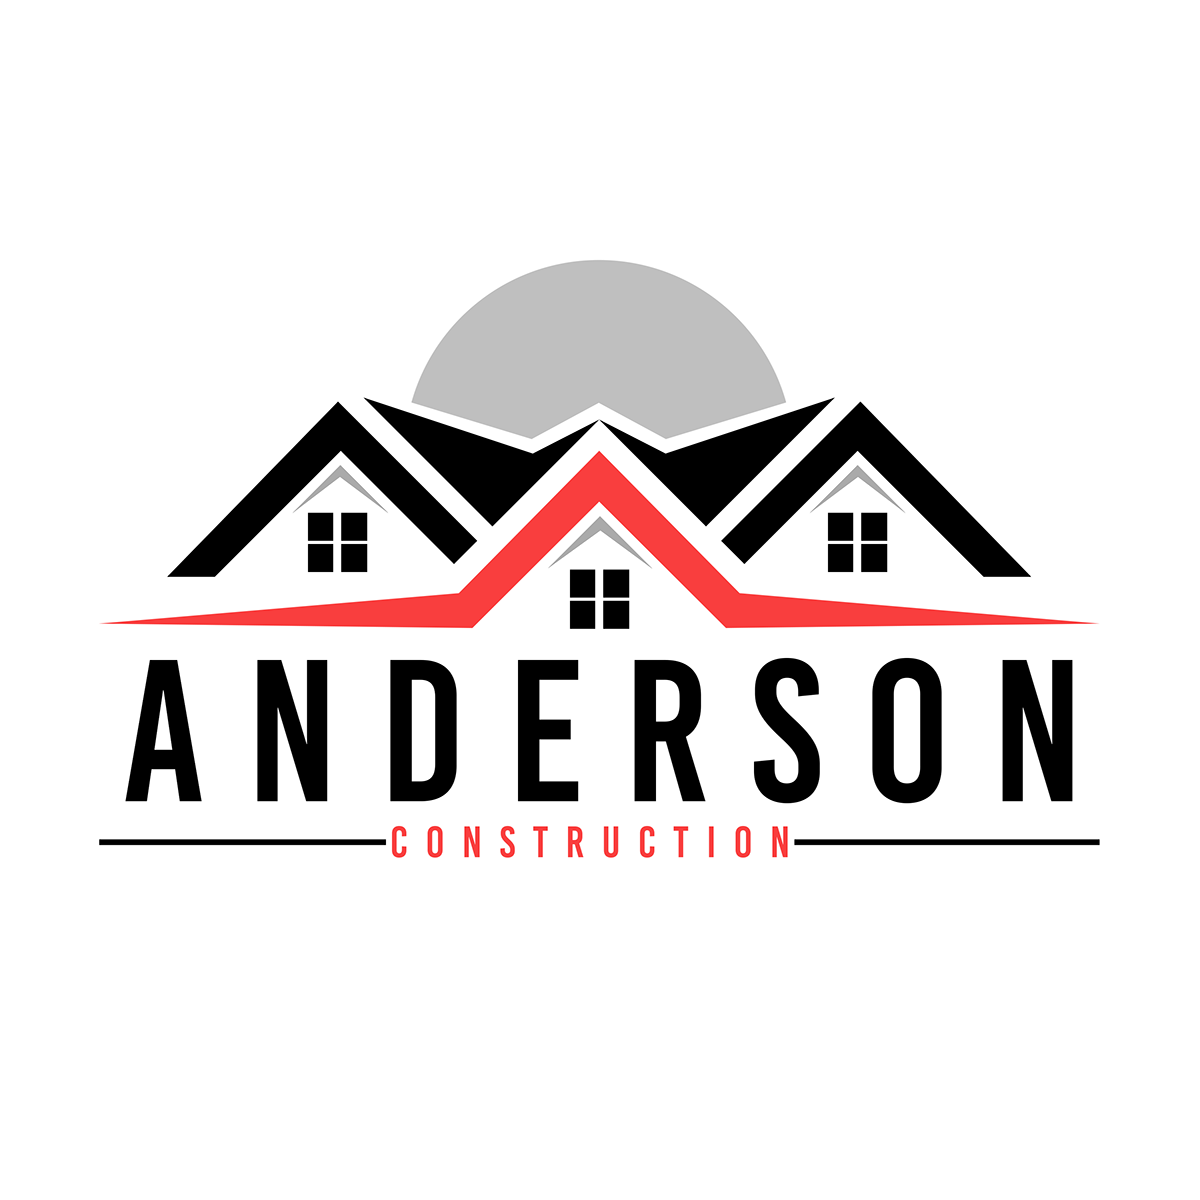 Construction company logo png. Design for a local